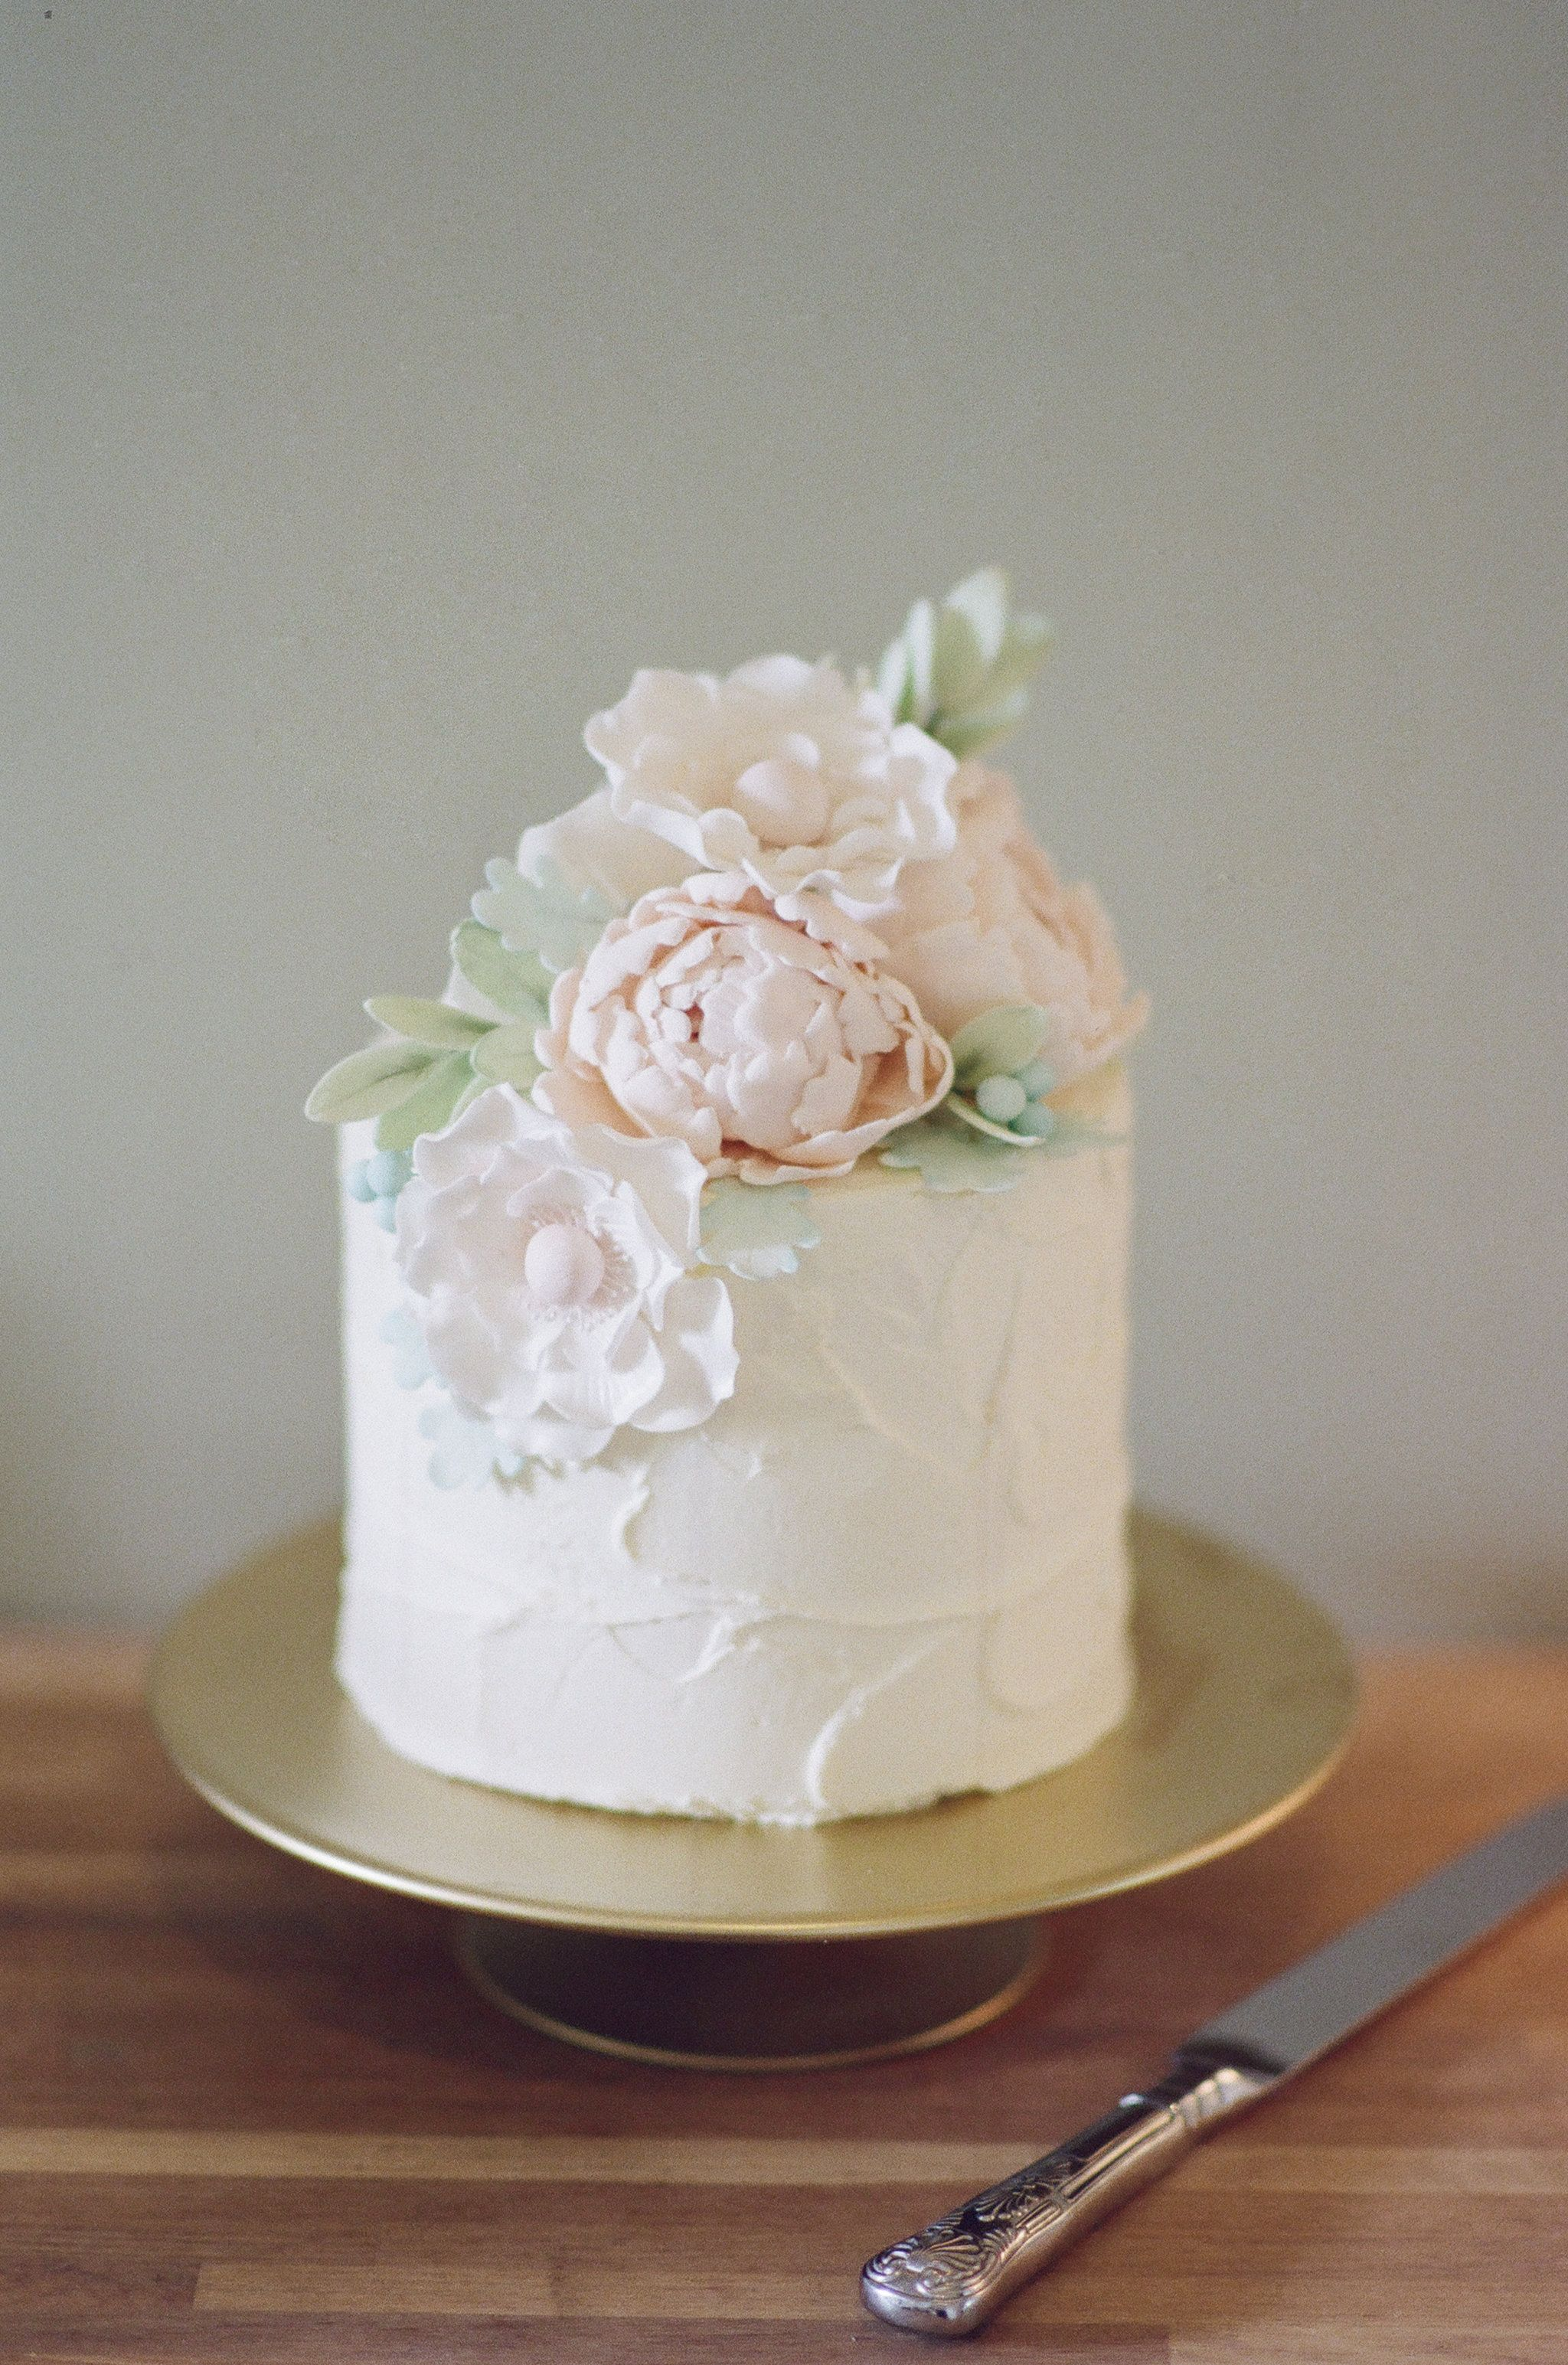 Elegant Single Tier Buttercream Wedding Cake With Handmade Sugar Flowers Created For Such A Lovely English Wedding Cakes Sugar Flowers Cake Hand Painted Cakes